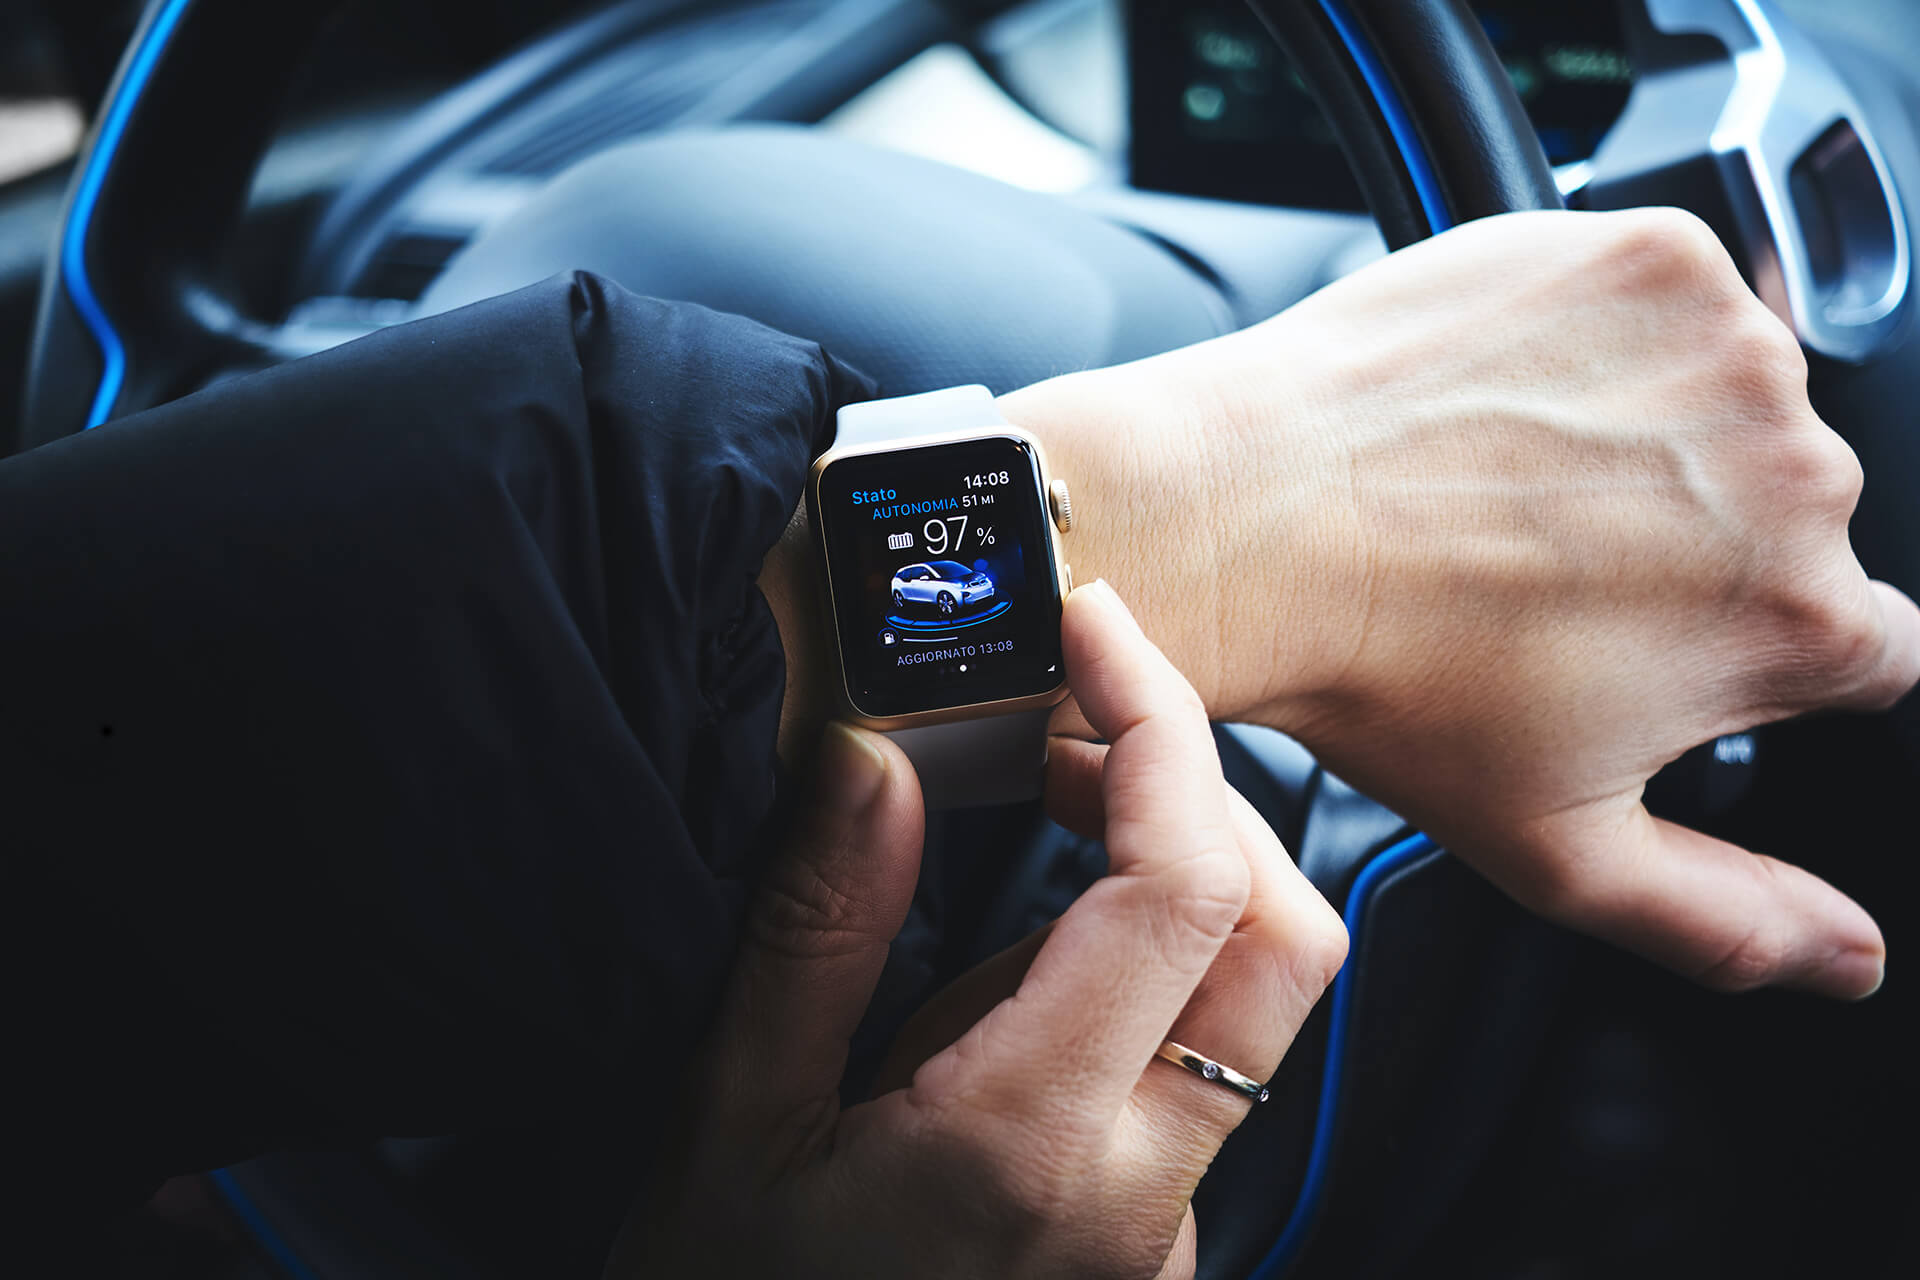 A person controls a smart car via their smart watch app